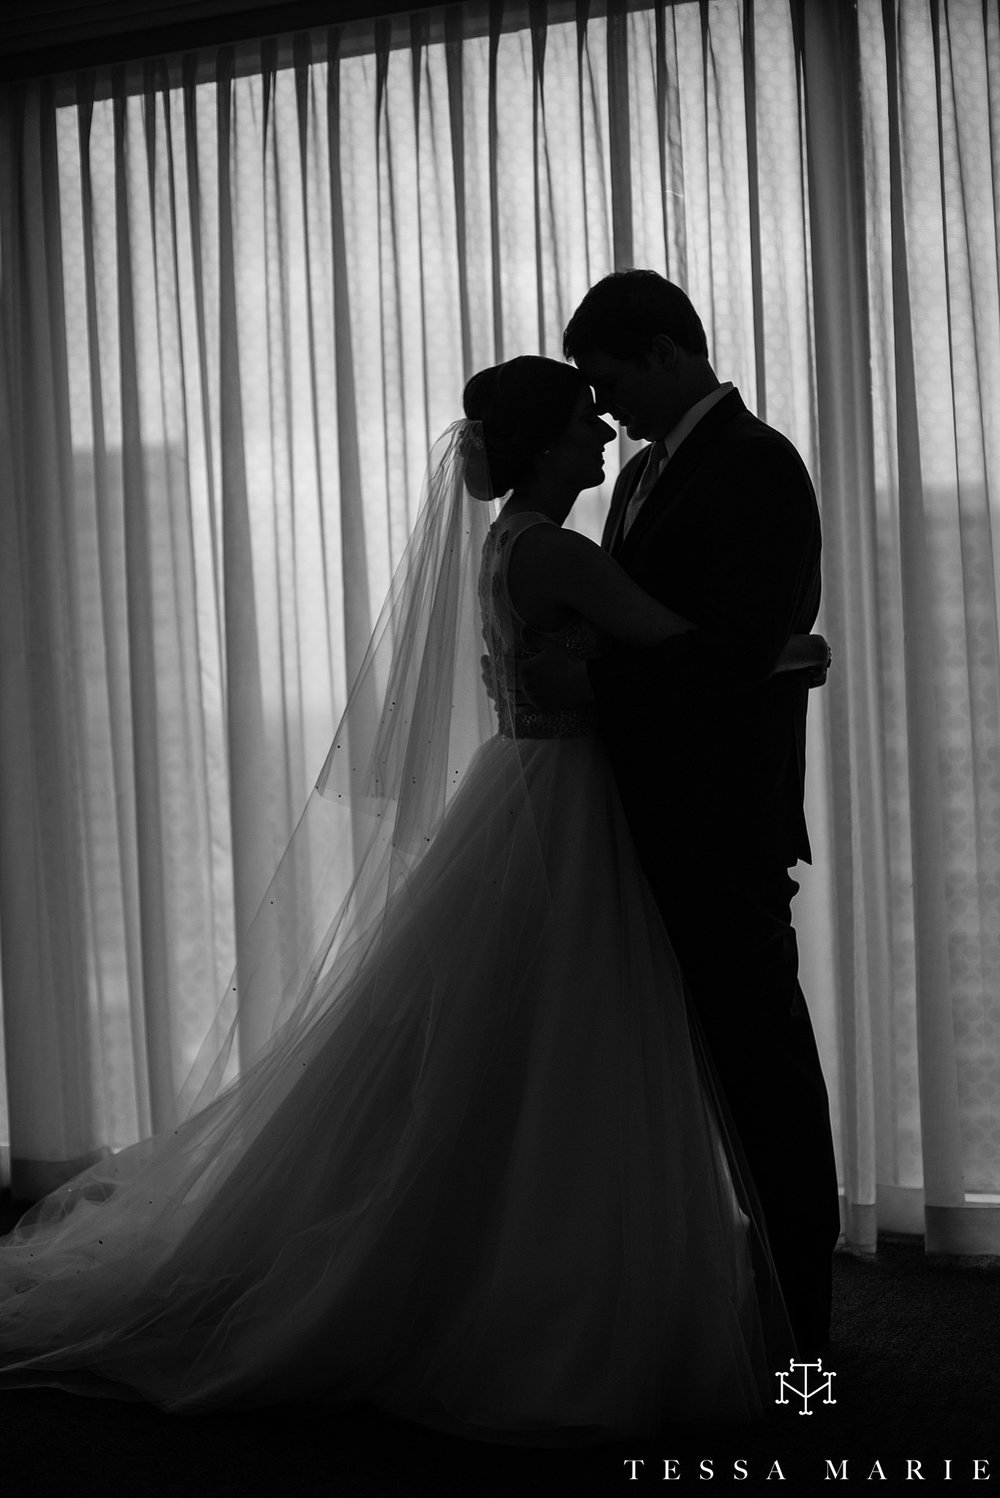 atlanta_wedding_photographer_tessa_marie_weddings_lowes_hotel_peachtree_midtown_fall_wedding_0203.jpg